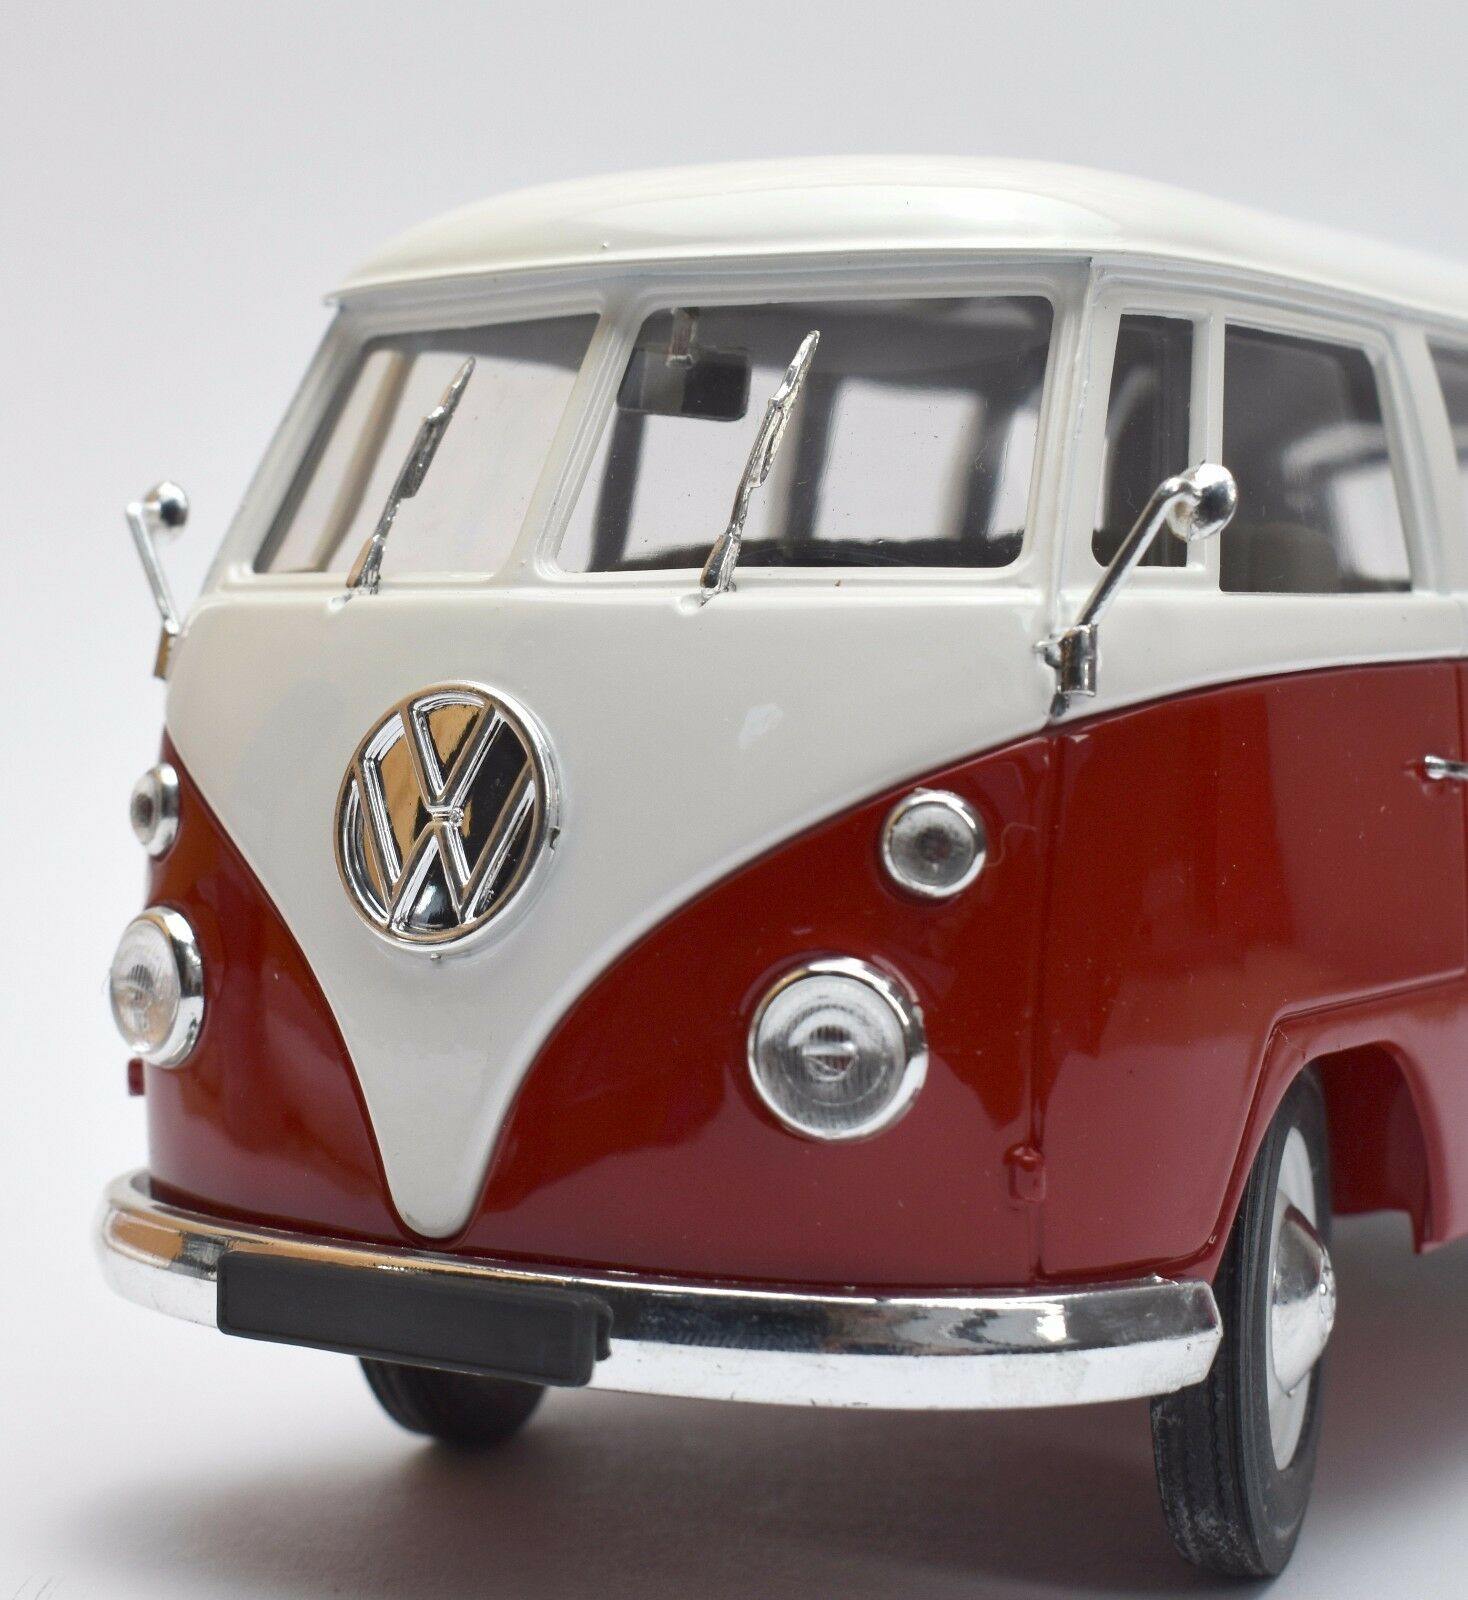 Solido Classic VW Volkswagen t1 Bulli in rouge Painted  blanc, OVP, 1 18, k012  distribution globale